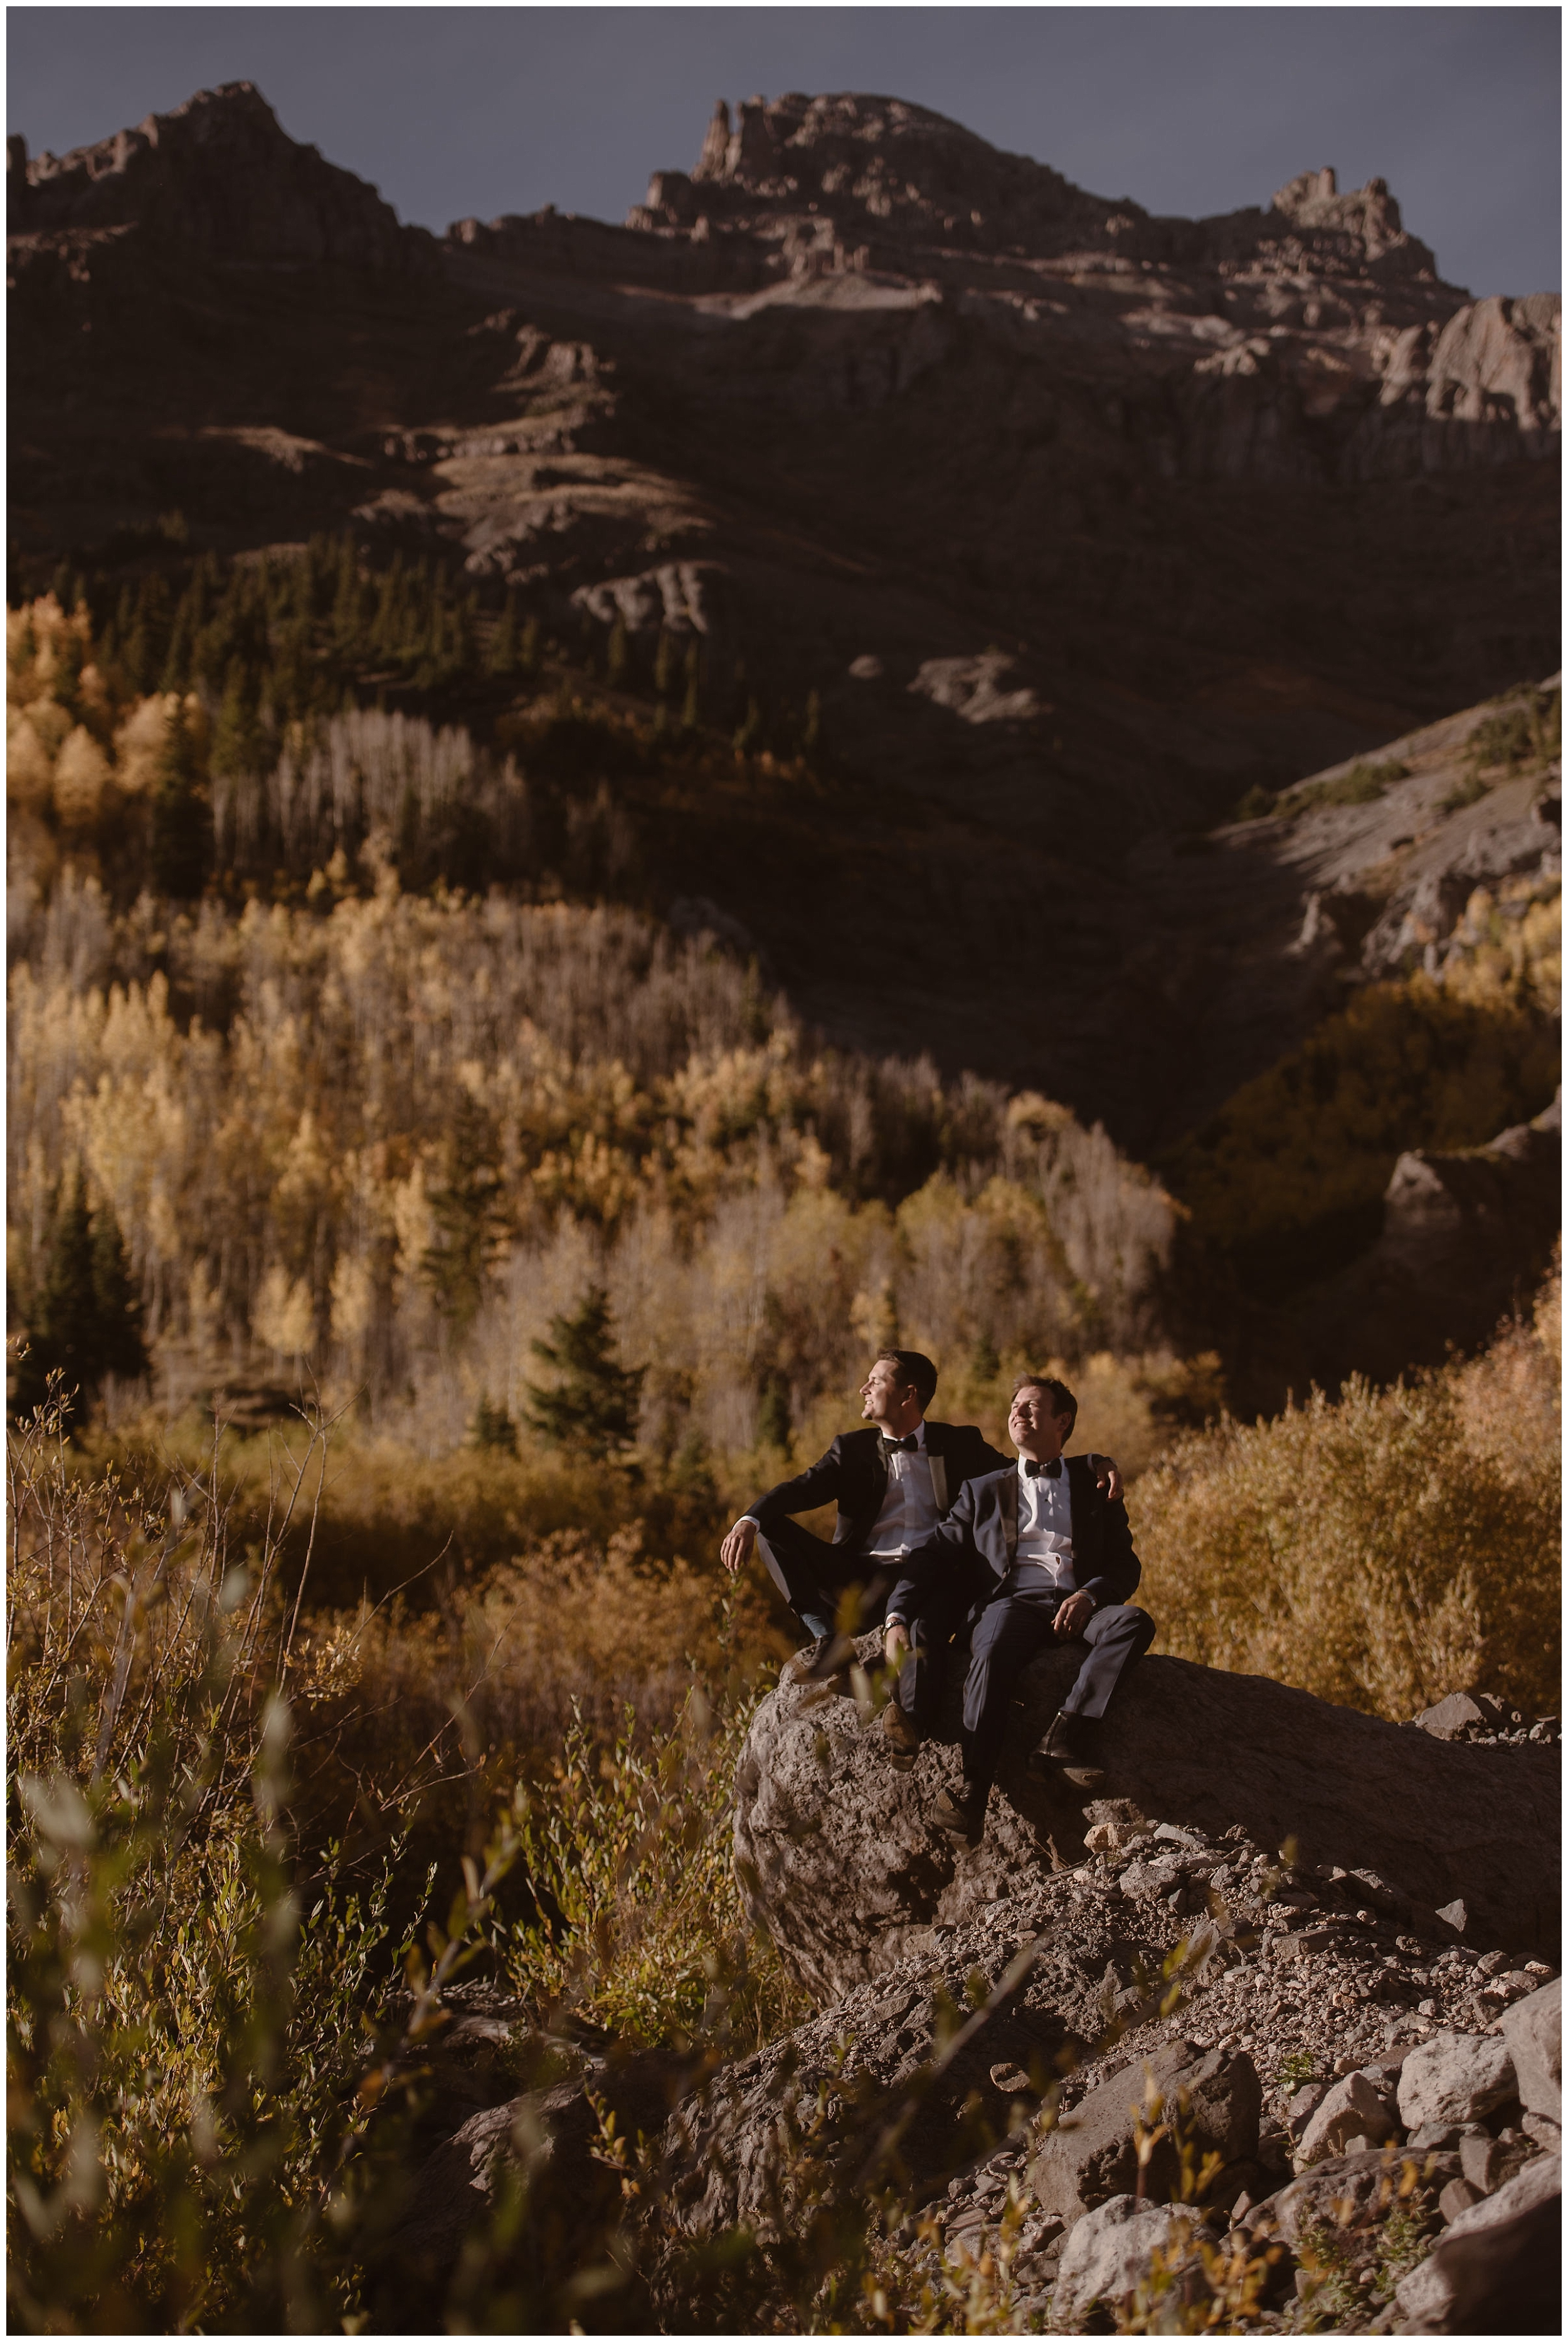 Brian and Ernie, just married, sit on a jagged, rock platform as the sun sets and casts them in a shadow. All around them, golden hues are painted into the wildflowers, the trees, the grass. Brian and Ernie chose this destination elopement location so their elopement photos would show the golden hues of Fall.